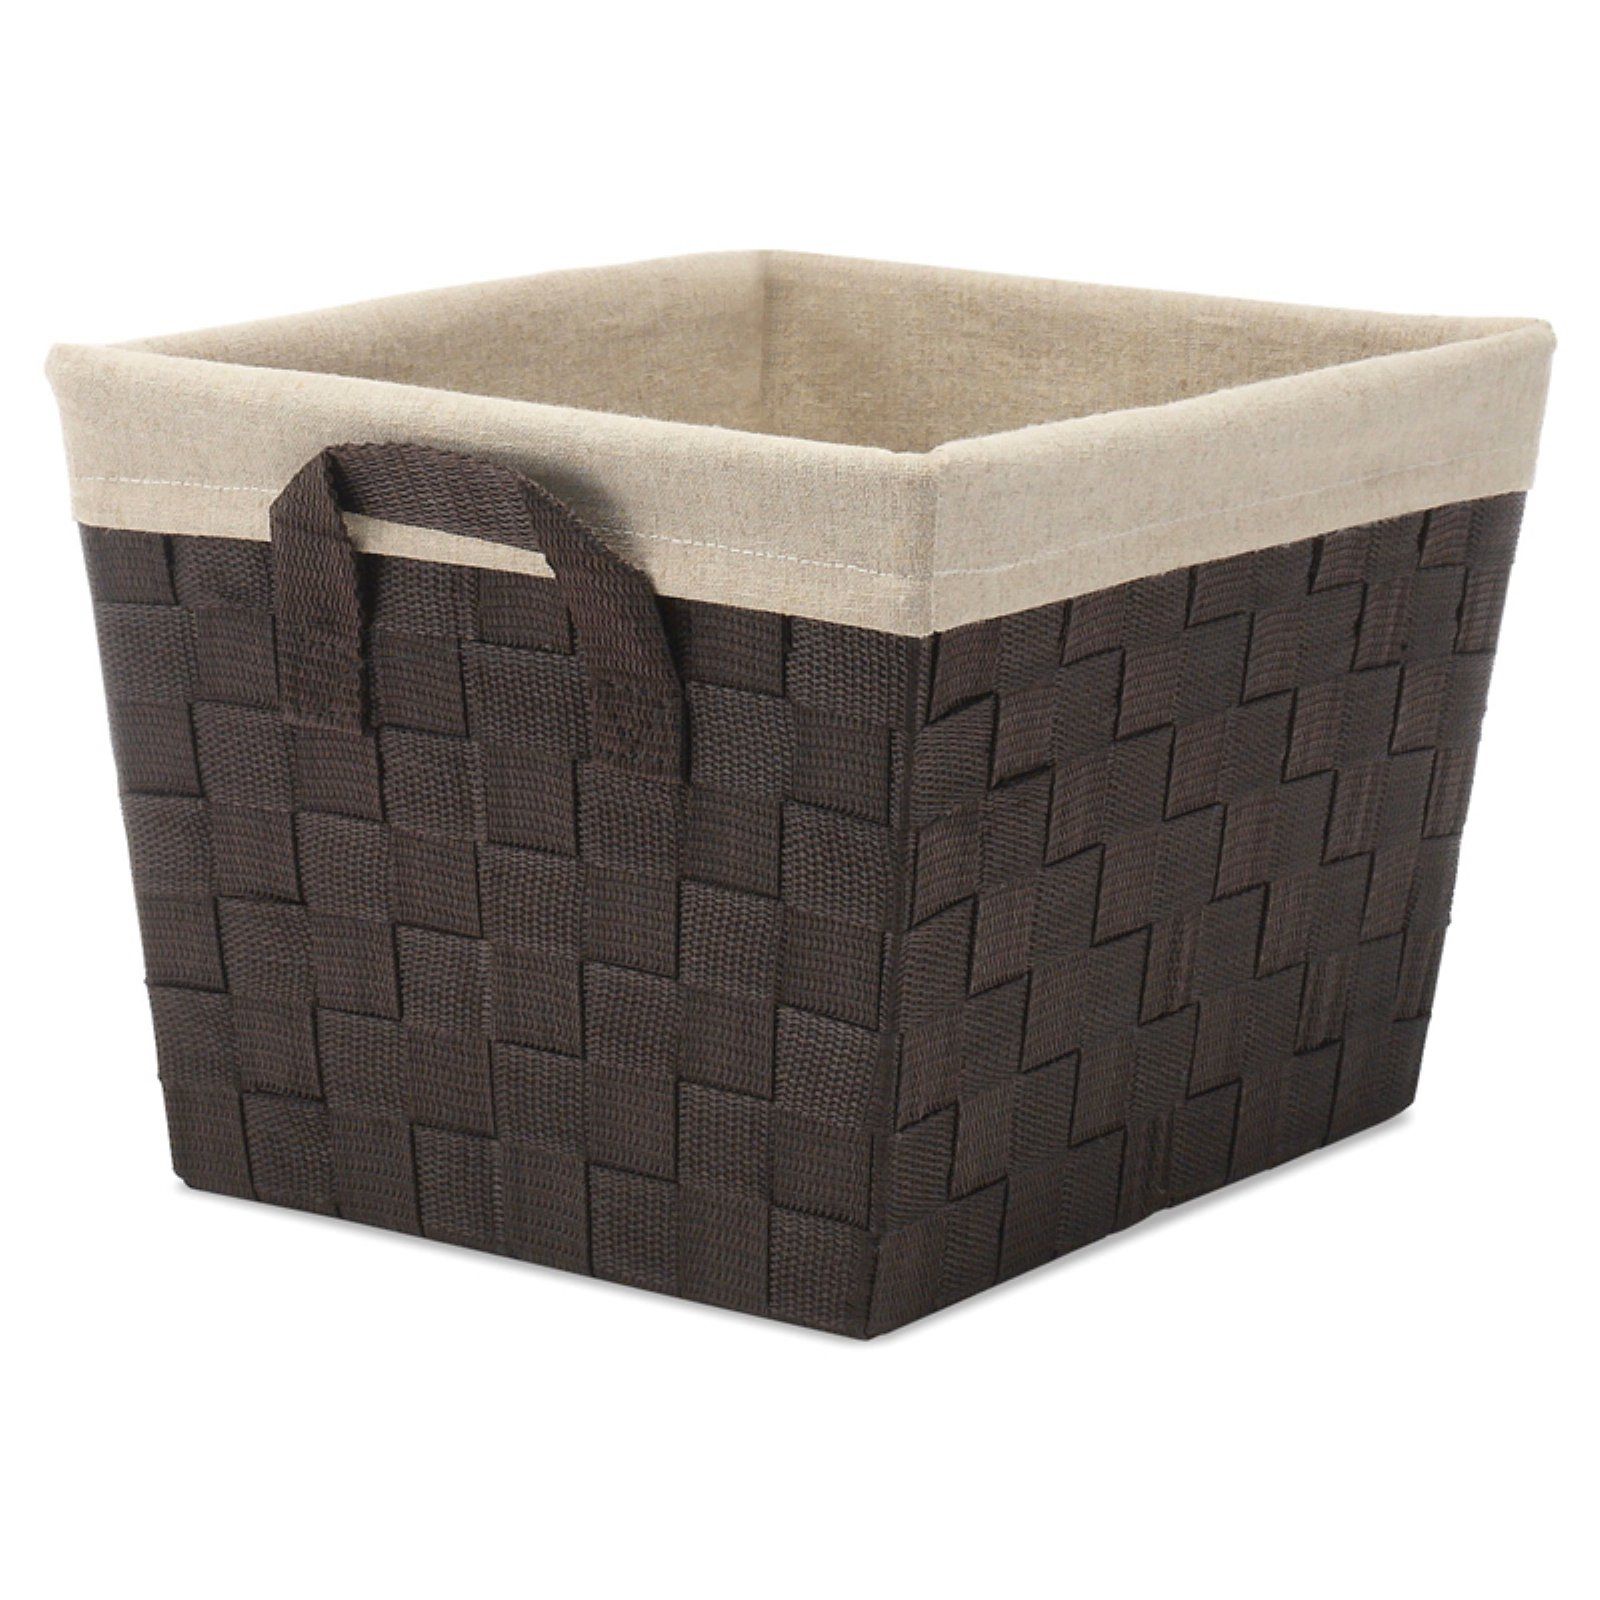 "Whitmor 6581-3903-ESPR 12.25"" x 7.75"" x 10.13"" Espresso Woven Strip Tote with Liner"